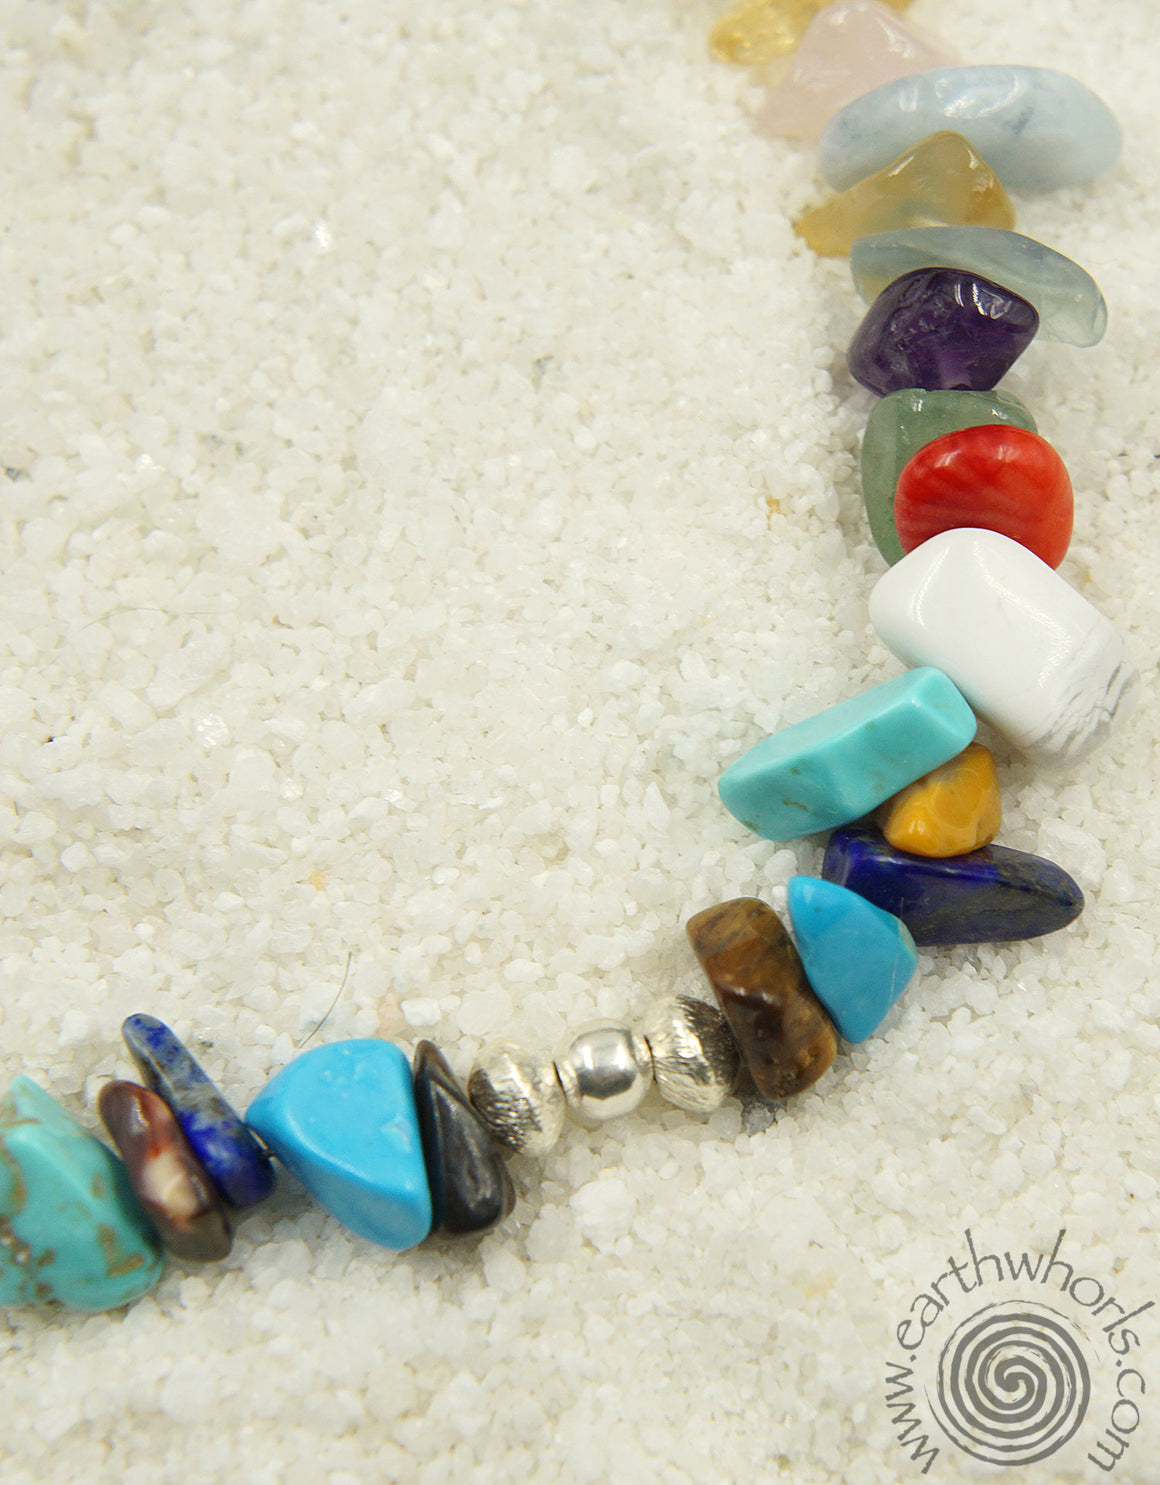 Chakra Stone, Raw Stone, Mixed Stone & Sterling Silver Anklet - EarthWhorls, LLC